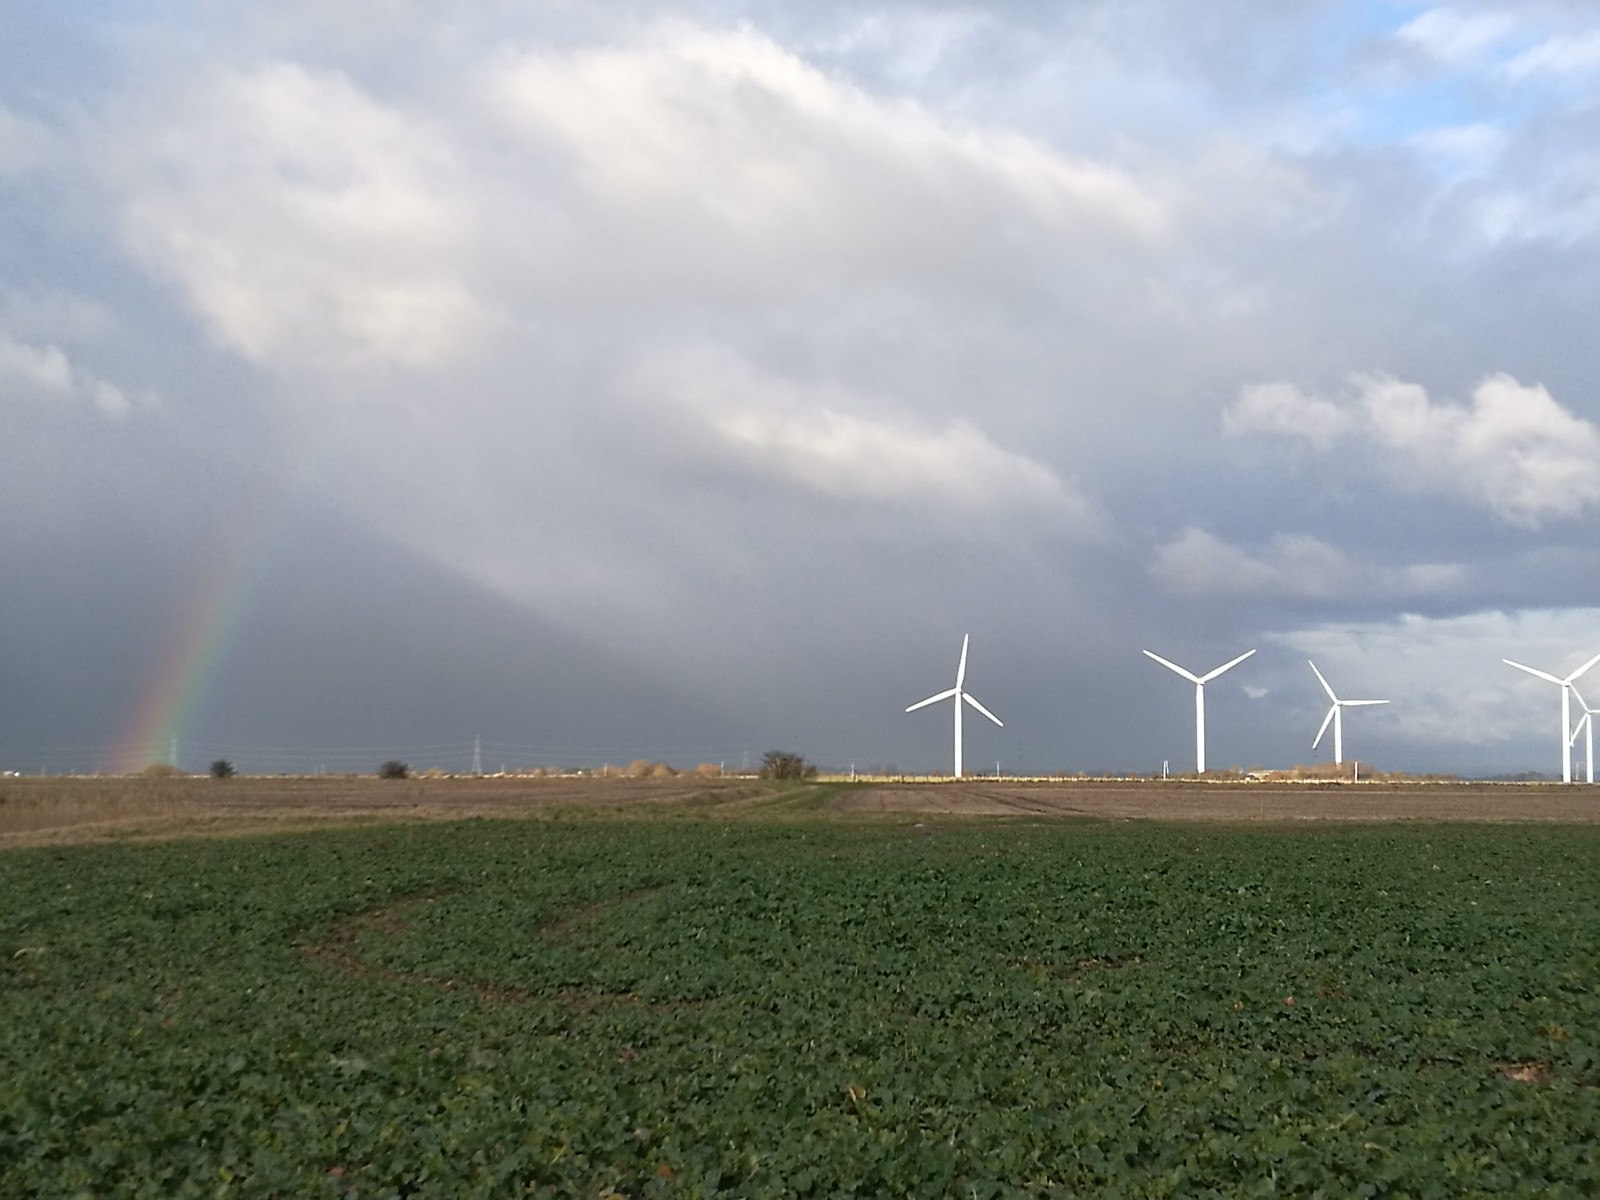 Rainbow and Wind Farm SWC 154 - Rye to Dungeness and Lydd-on-Sea or Lydd or Circular (Wind Farm Extension of Rye Ending) [taken by Emma P]